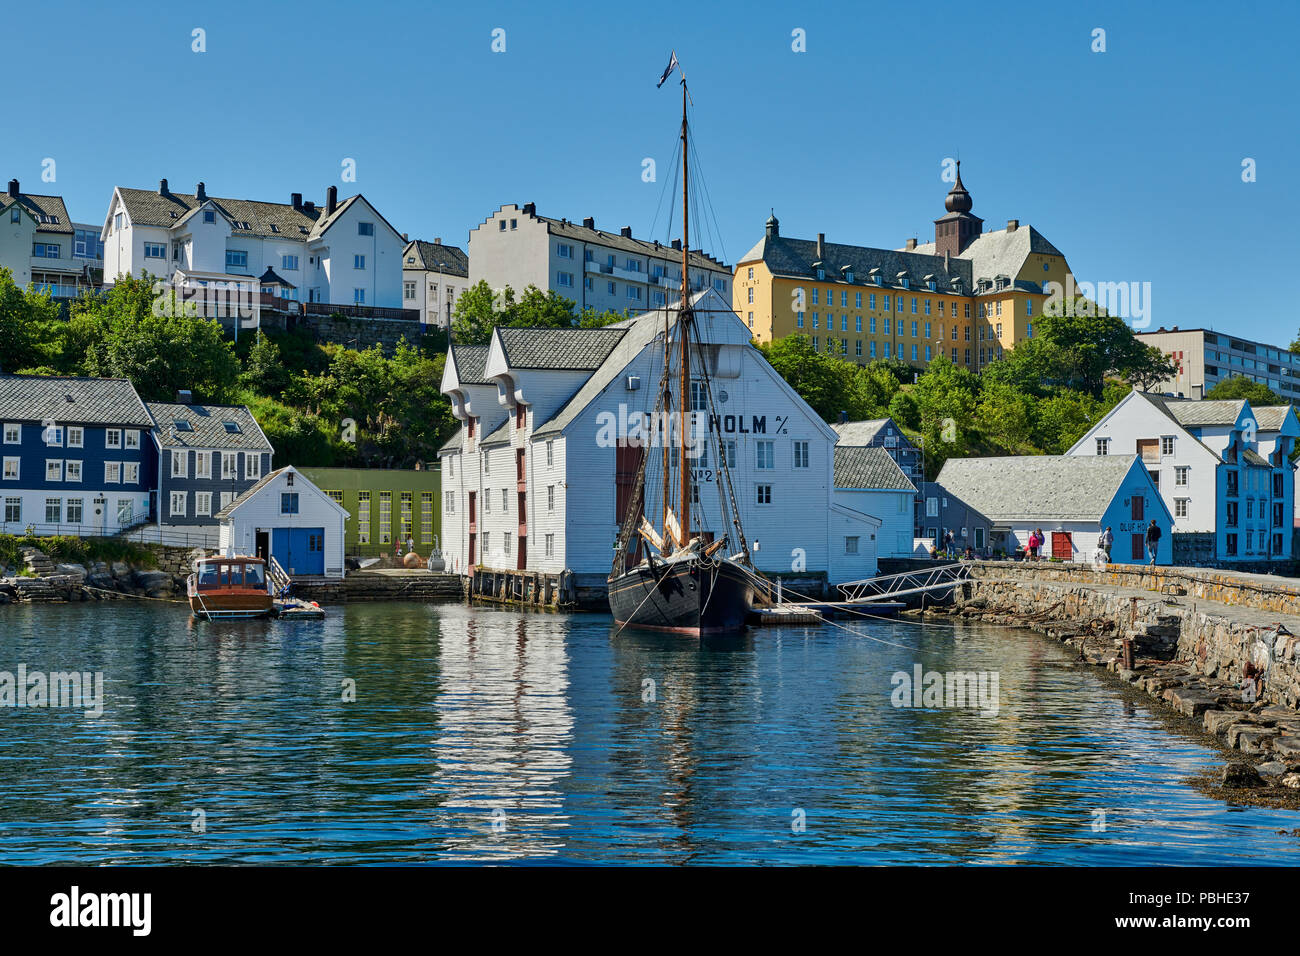 the Fishery museum in Ålesund, Norway, Europe - Stock Image